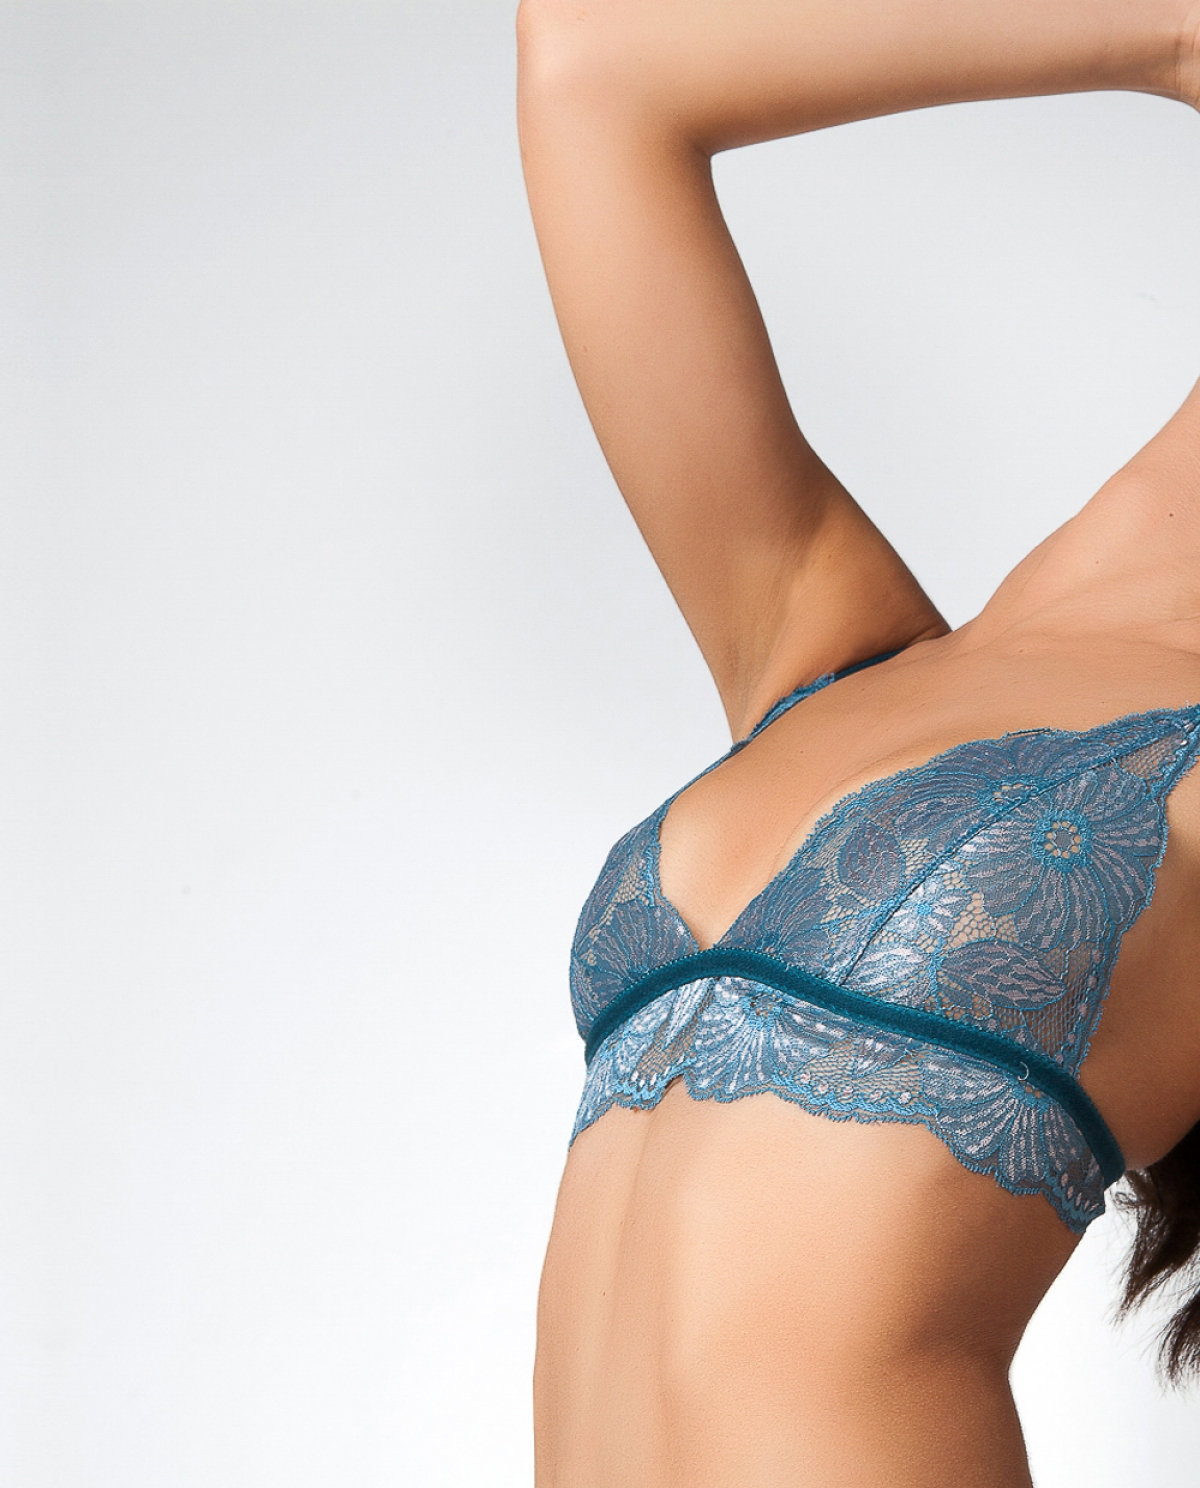 Shades of Teal Lace Lingerie Set